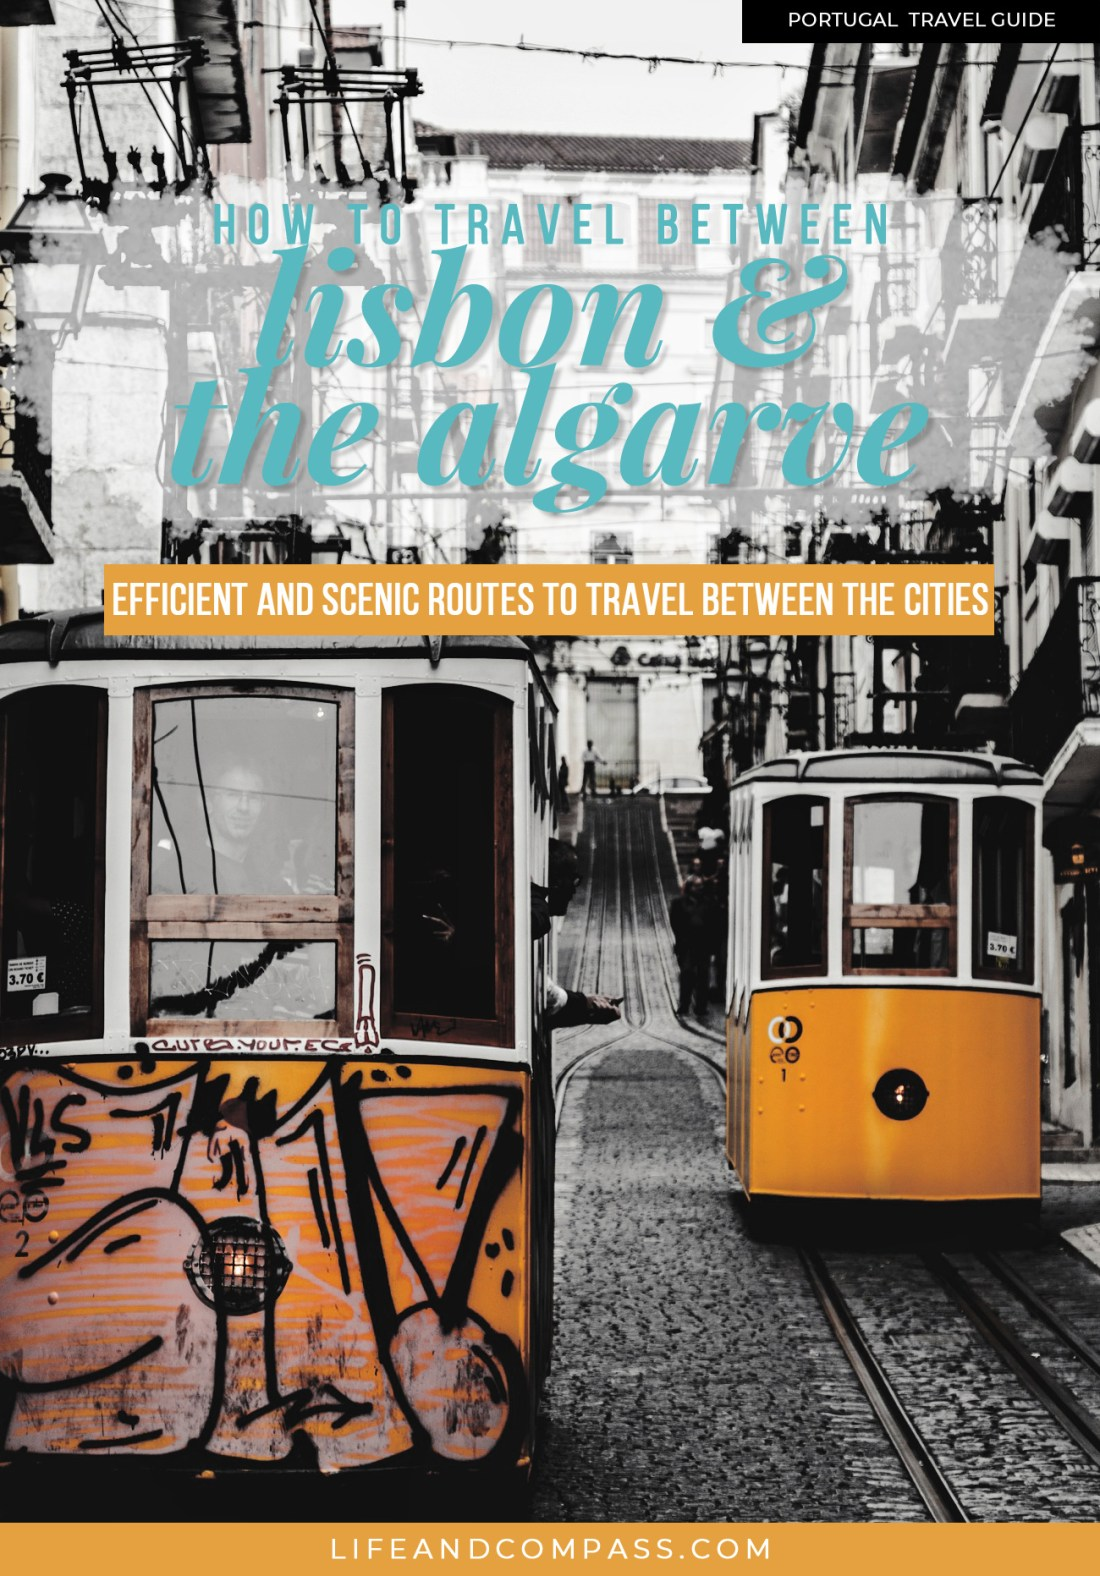 You can make visiting the Algarve region from Lisbon as a day-trip or over the course of several days. If you have the time, I would highly suggest that you stay over a few days because there's just so much to see and do! Here are 3 budget options for when you're planning your trip to visit the Algarve!